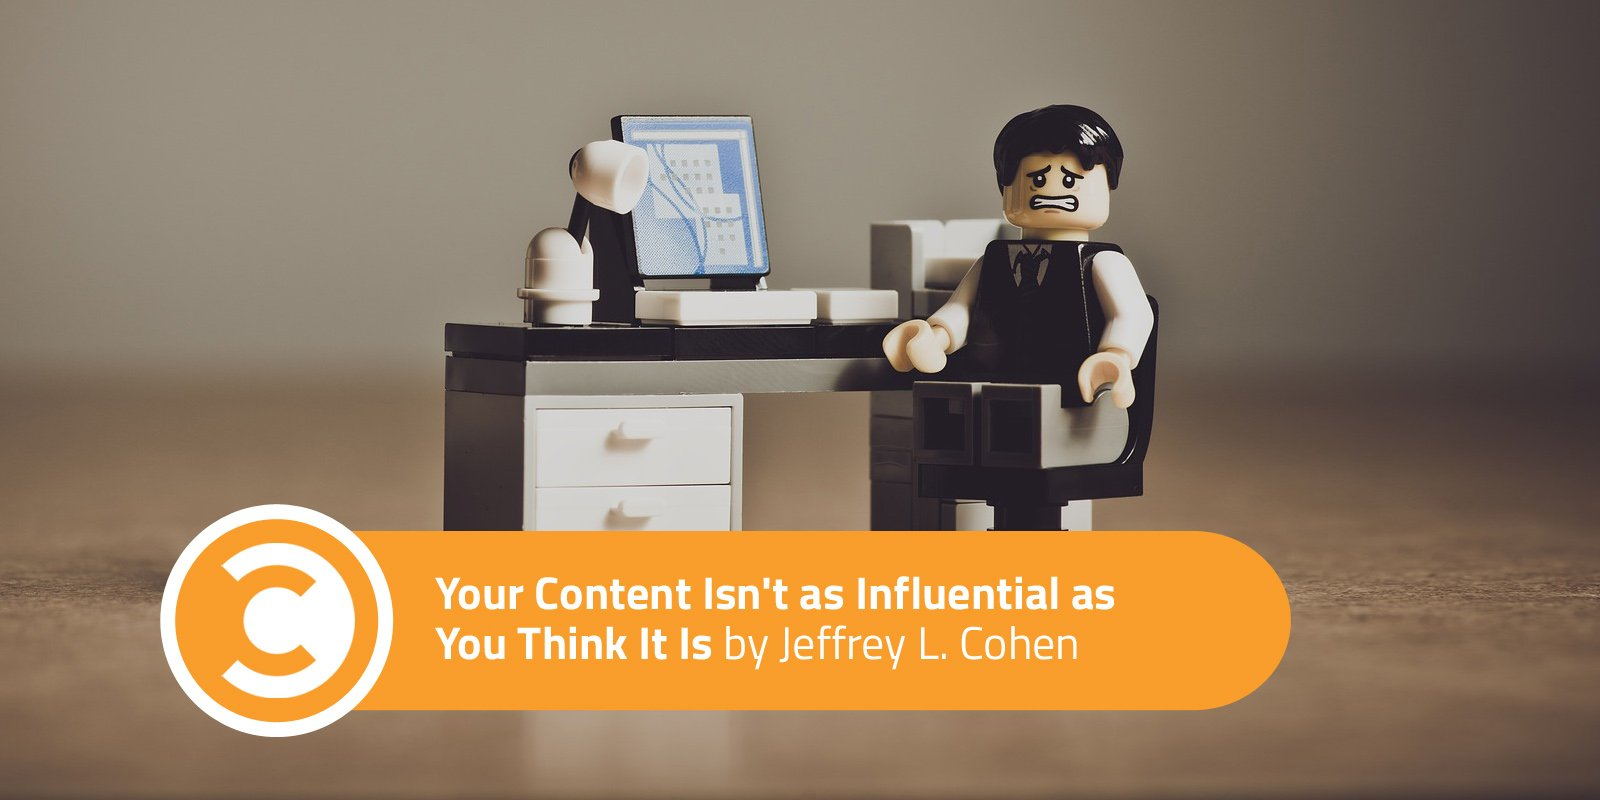 Your Content Isn't as Influential as You Think It Is